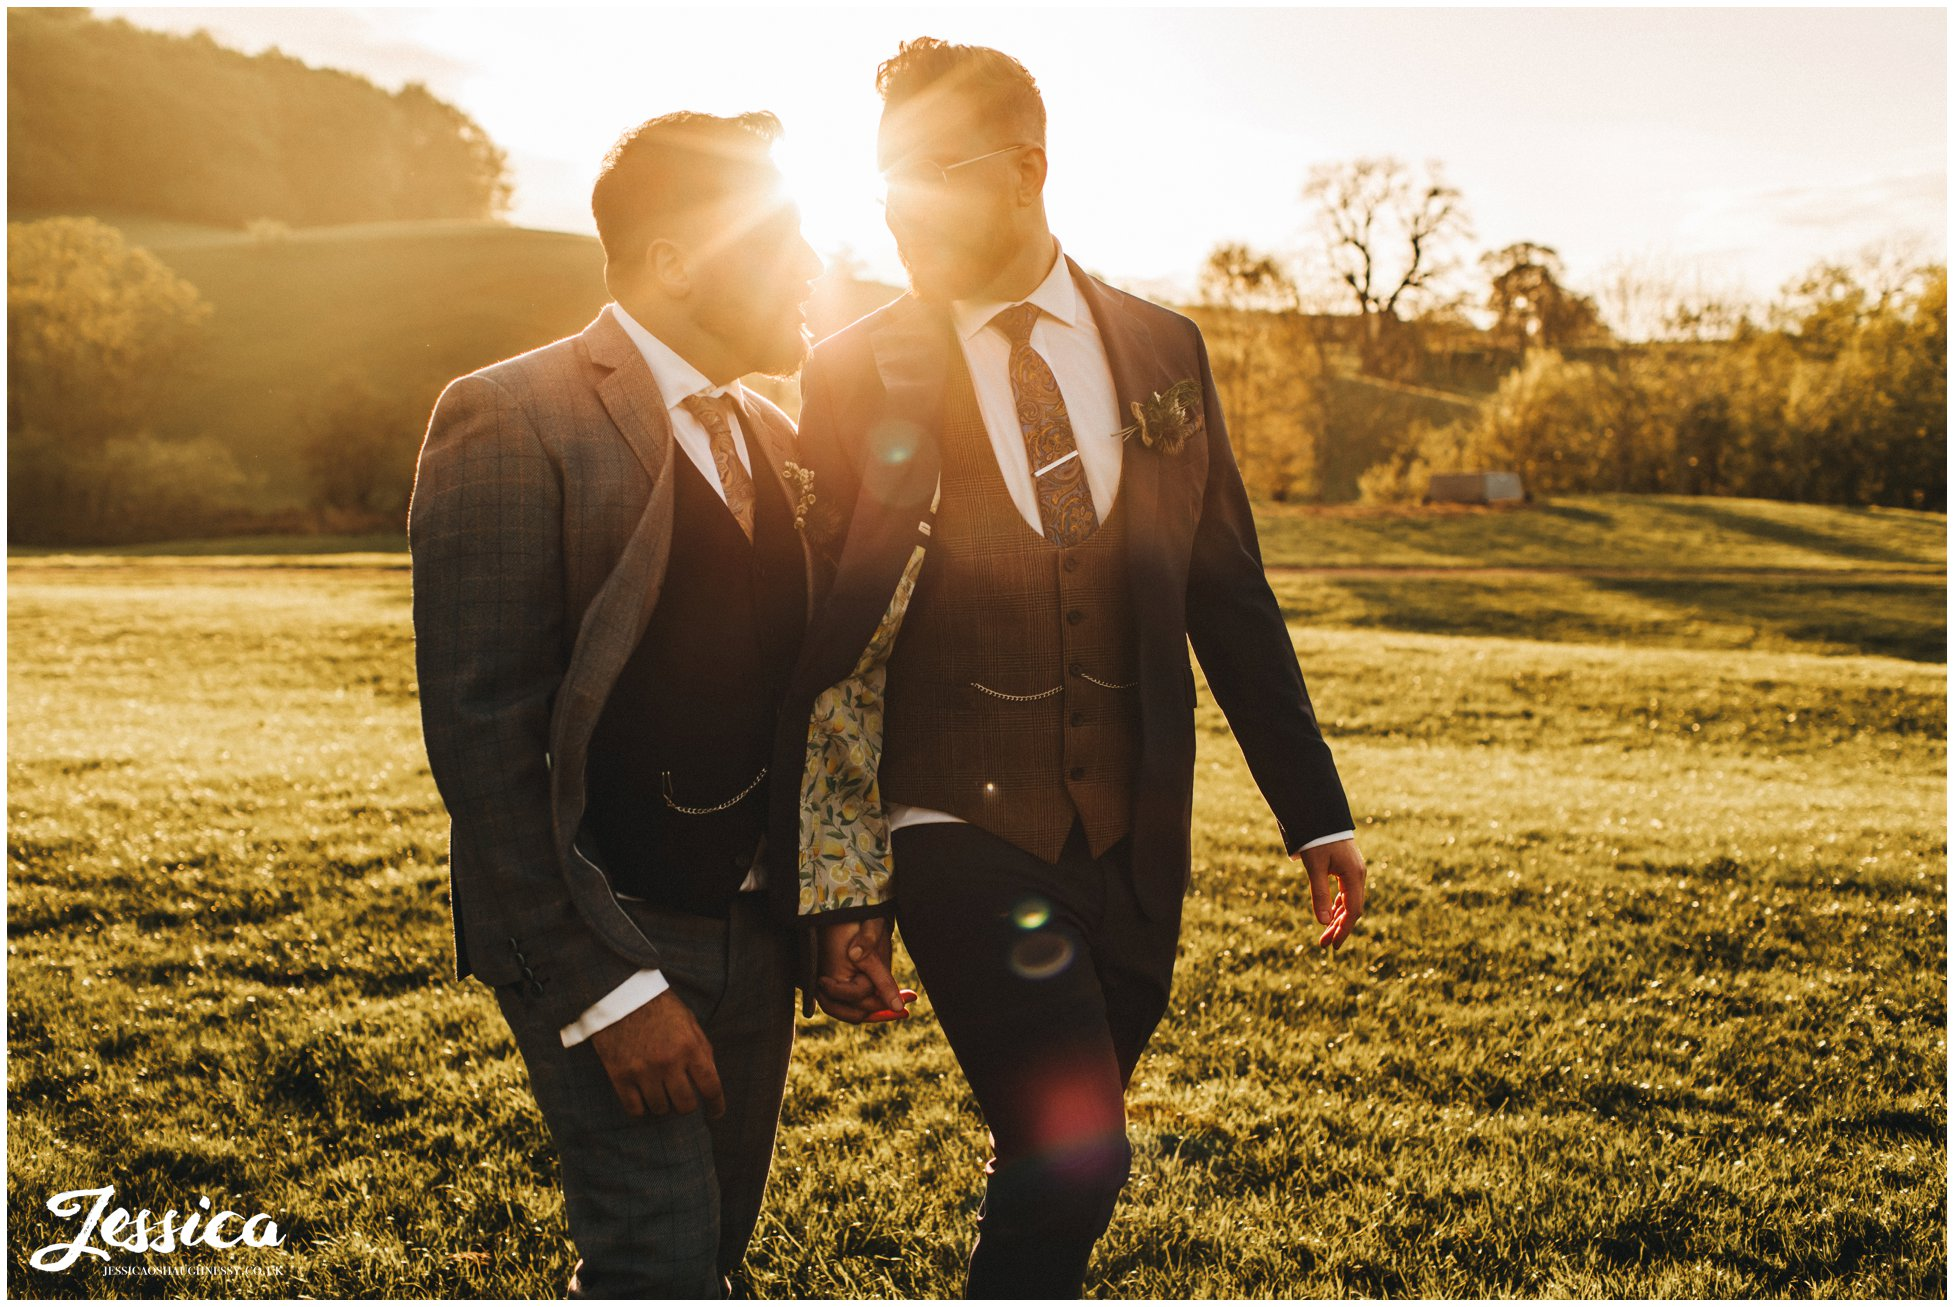 Groom's walk through the field together in the evening